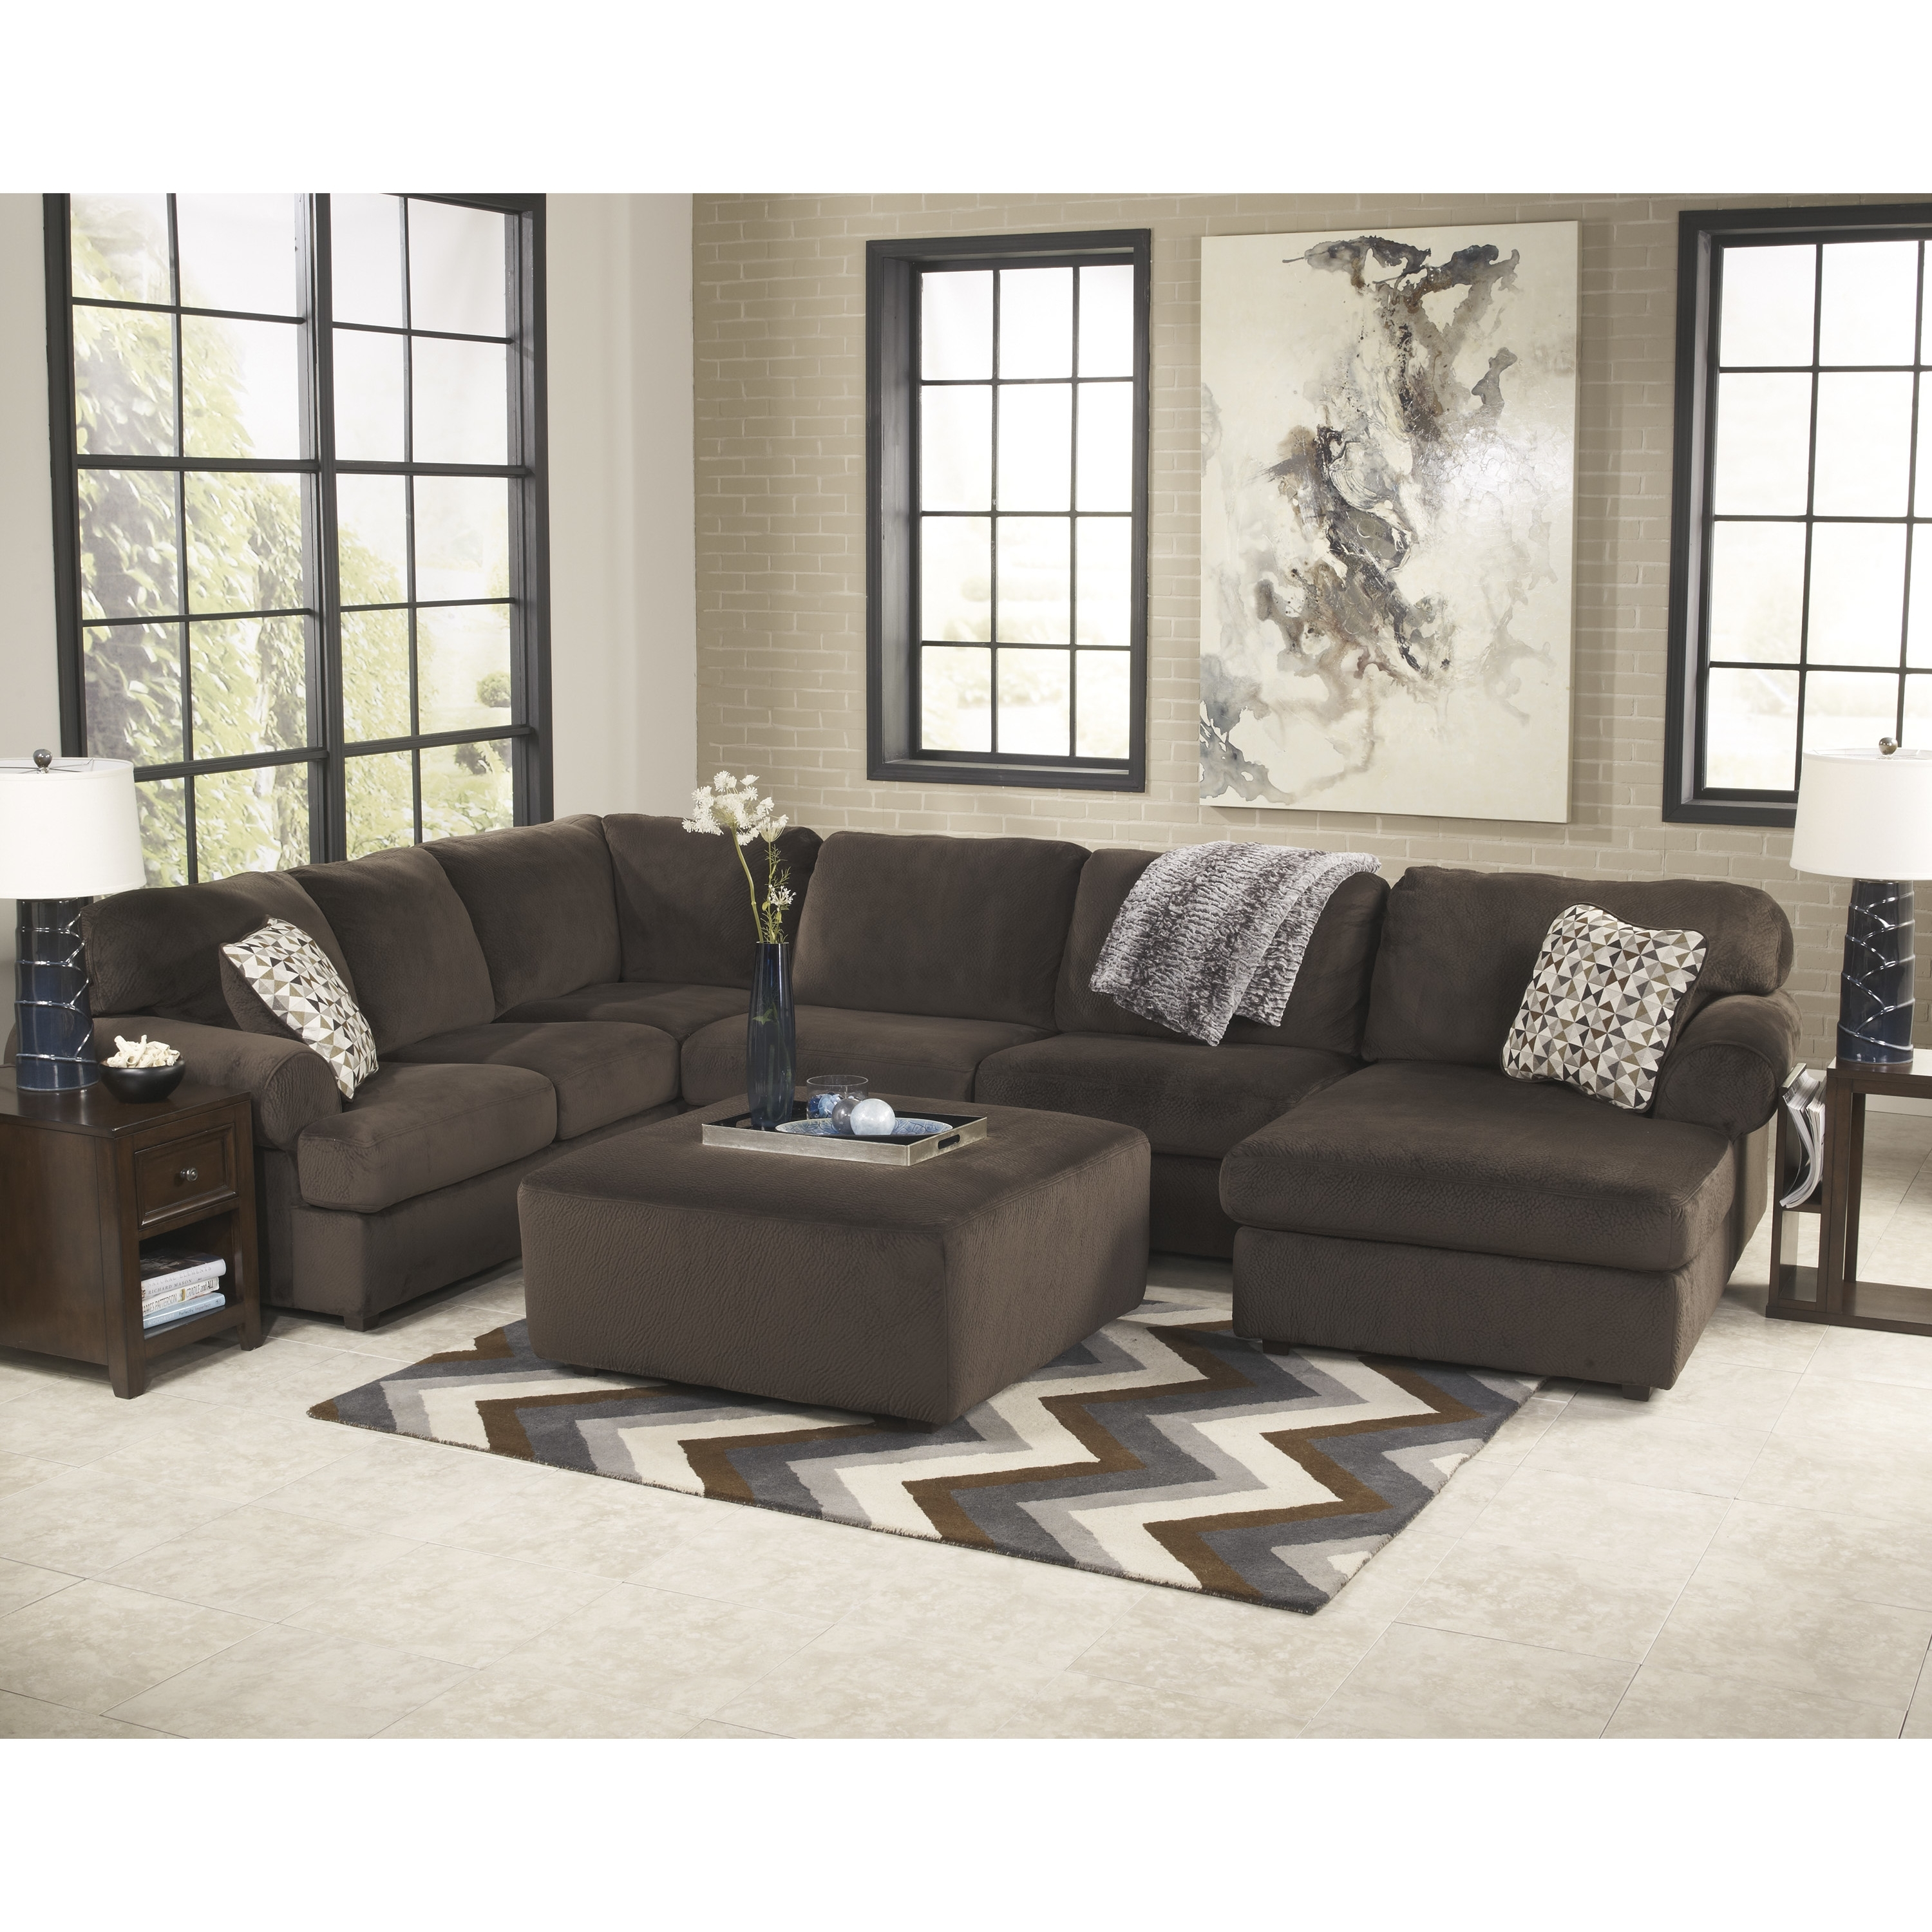 Most Up To Date Sectional Sofas Under 300 Throughout Free Wayfair Sectionals Furniture Using Pretty Cheap Sectional (View 11 of 20)